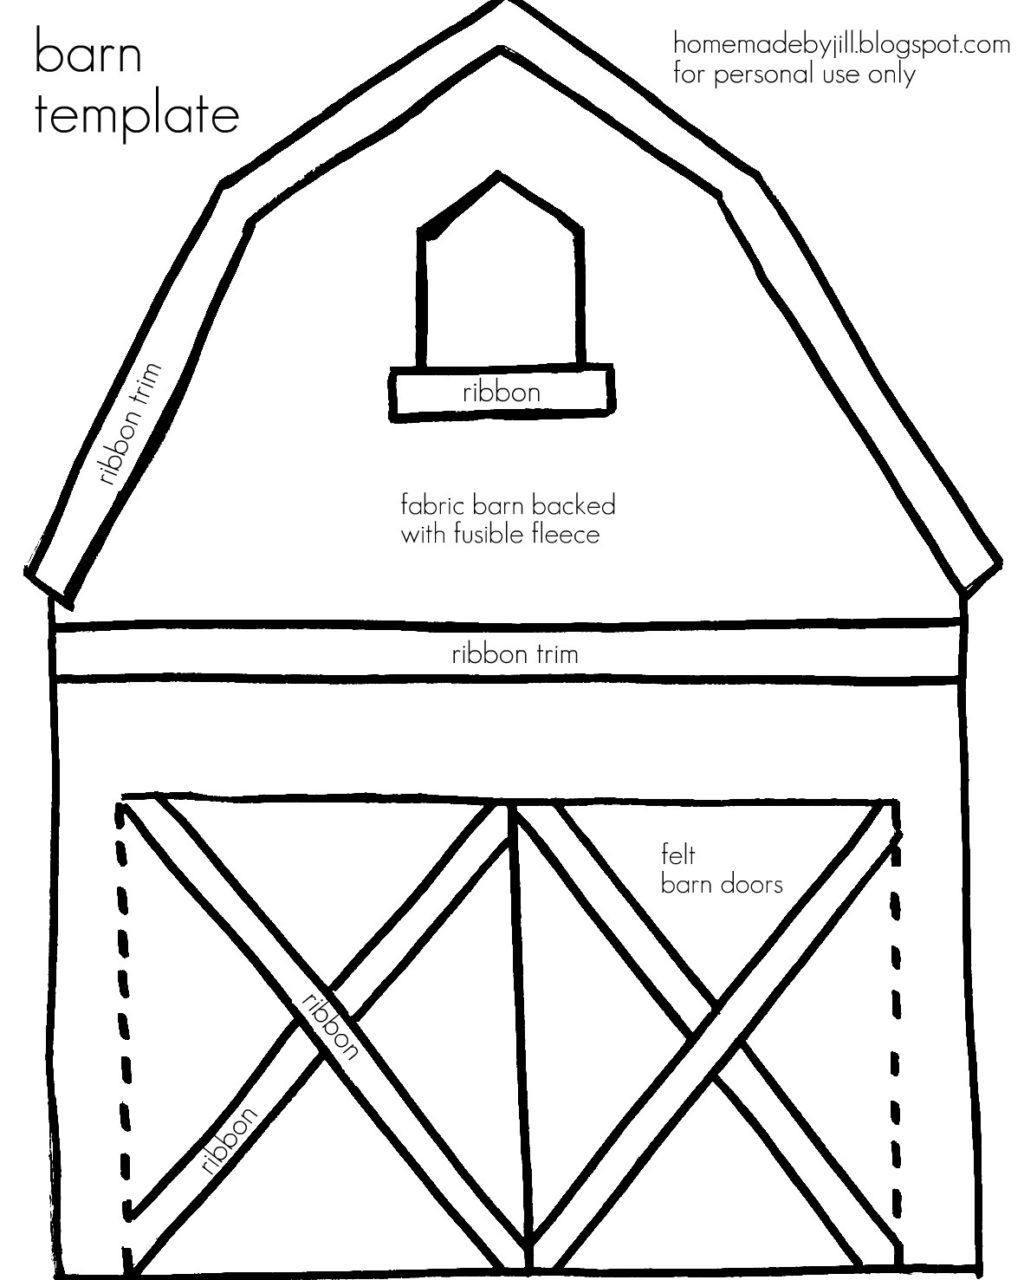 Barn coloring pages browsercover me card from user ladymaslova23 in yandex collections